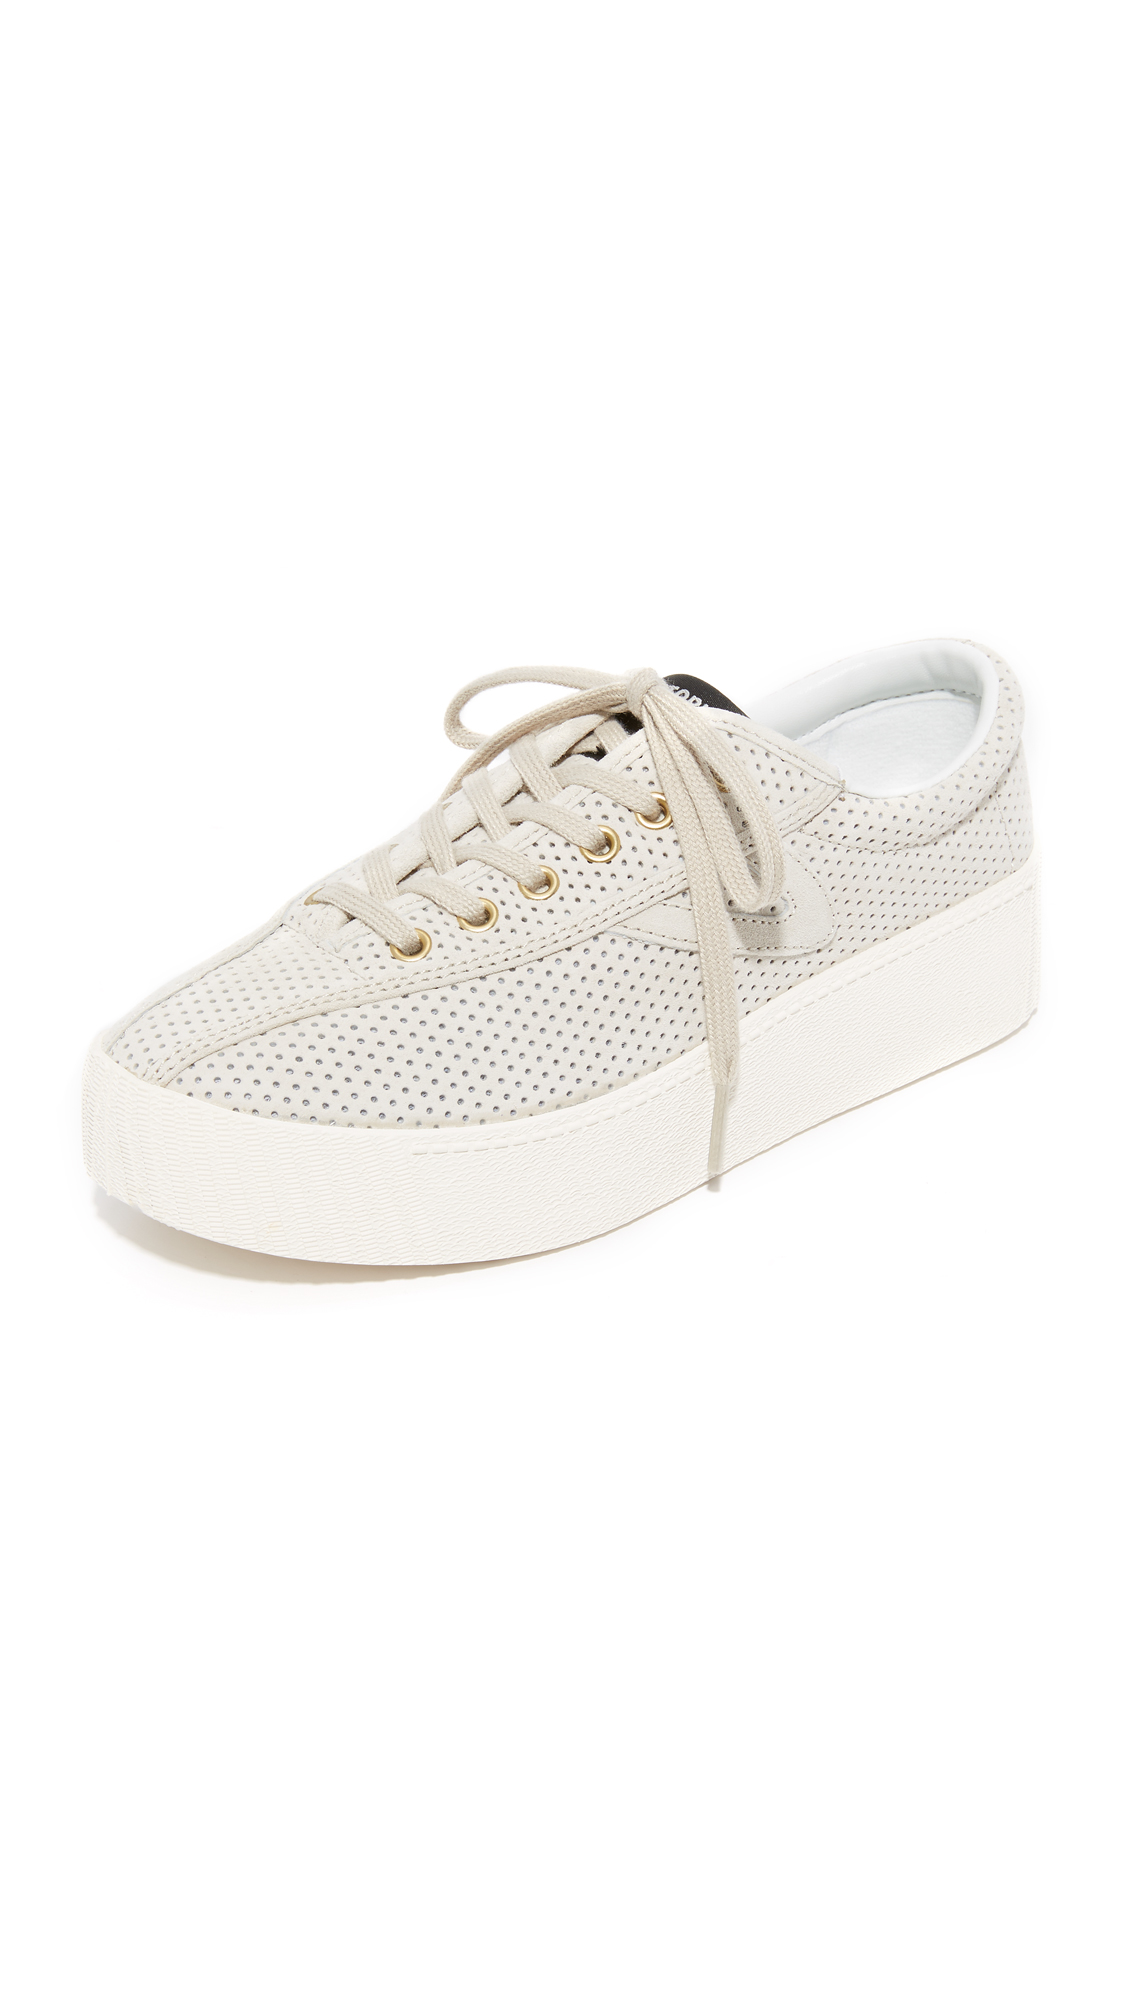 Tretorn Nylite Bold III Perforated Platform Sneakers - Sand